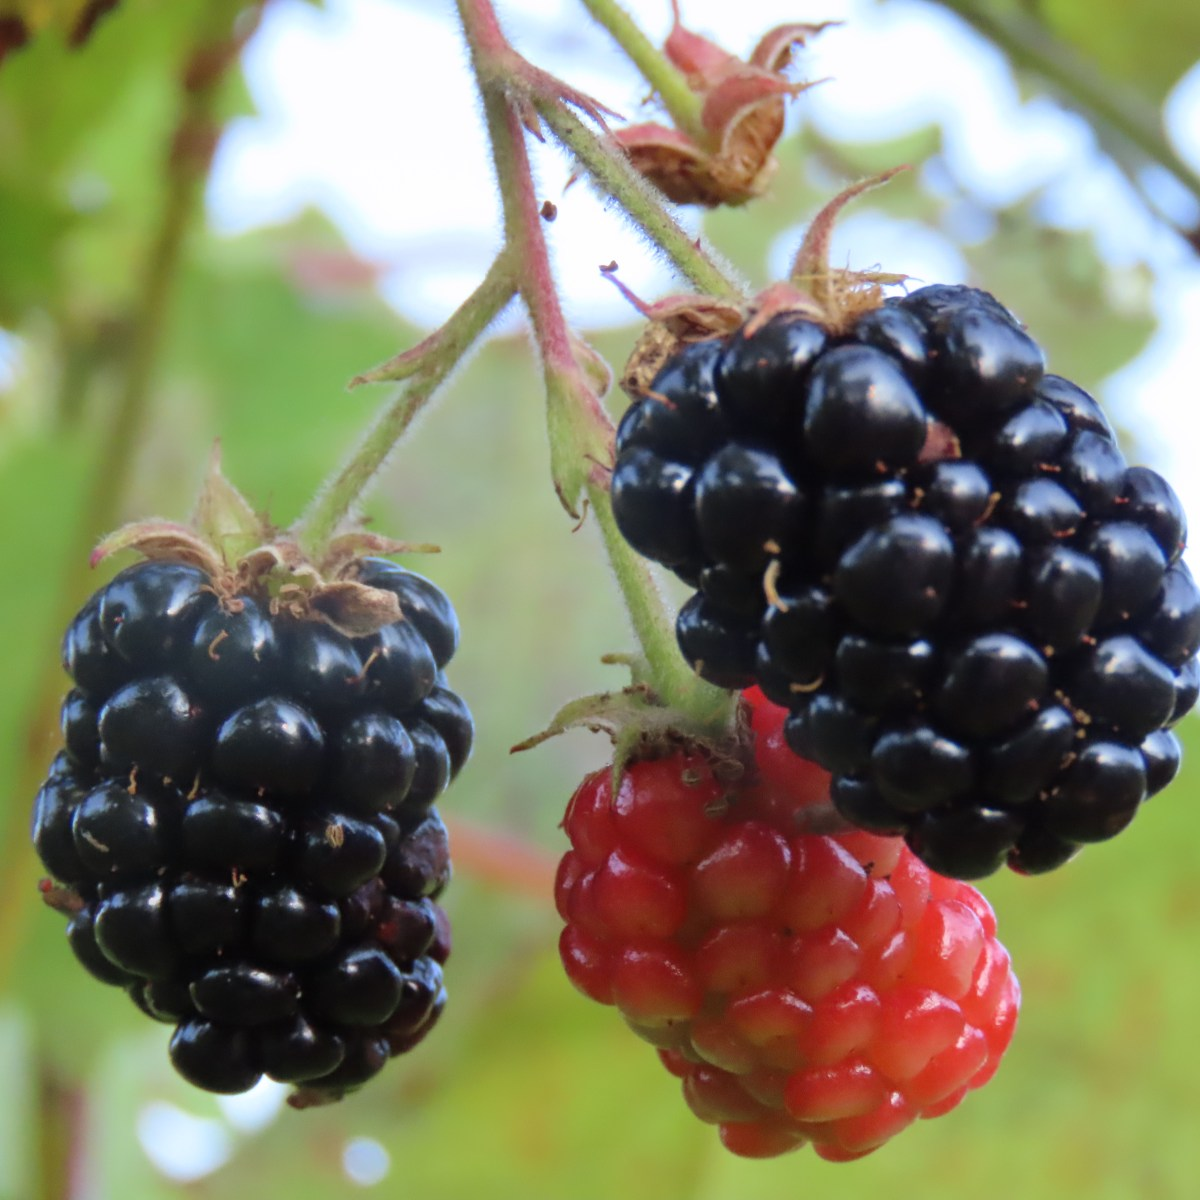 Three blackberries, one still red, hanging from a vine.